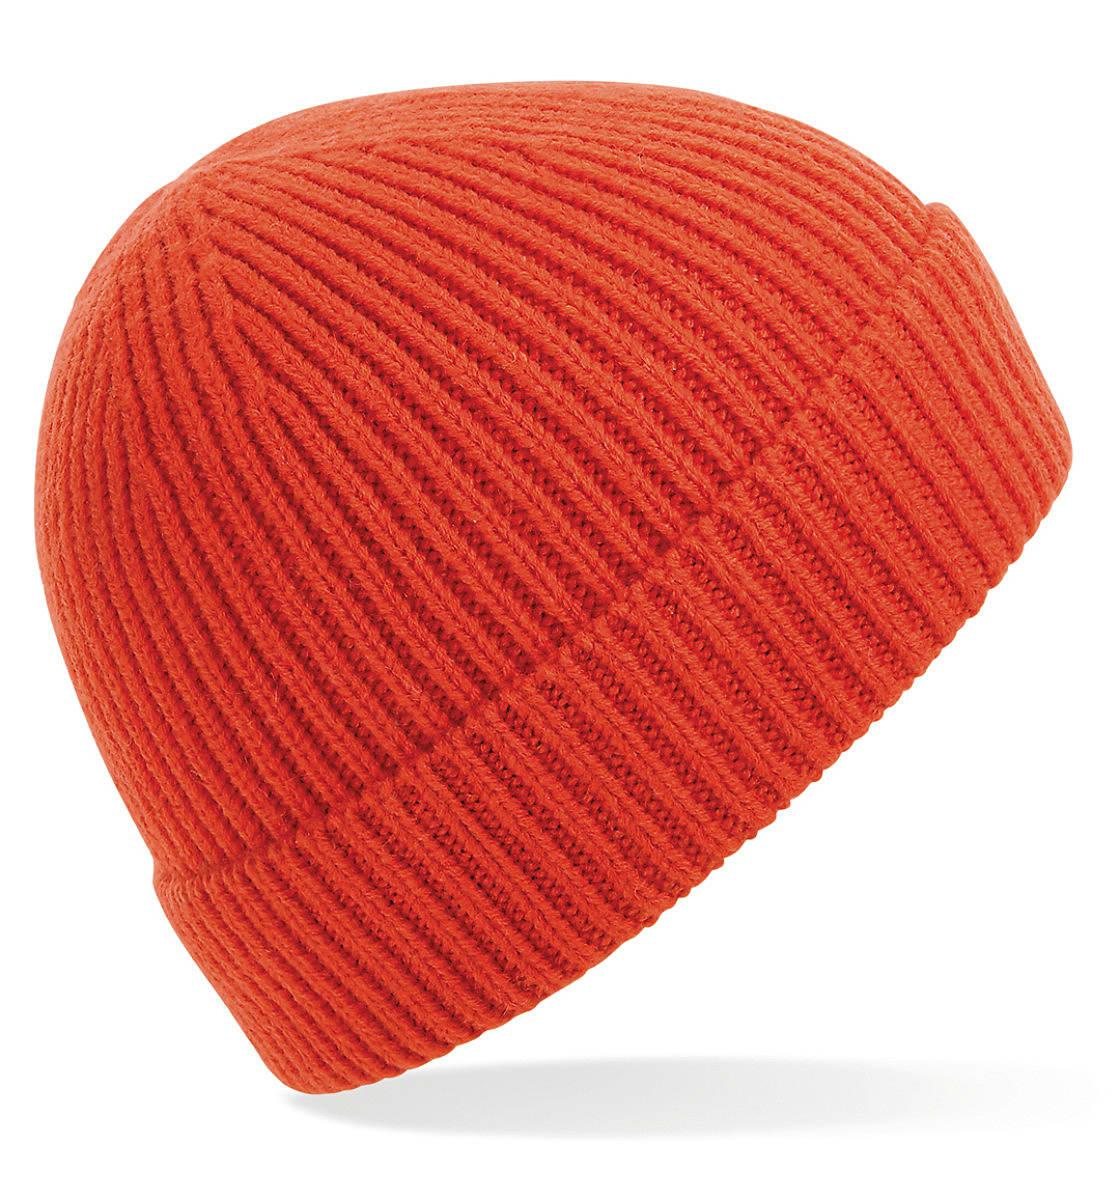 Beechfield Engineered Knit Ribbed Beanie Hat in Fire Red (Product Code: B380)